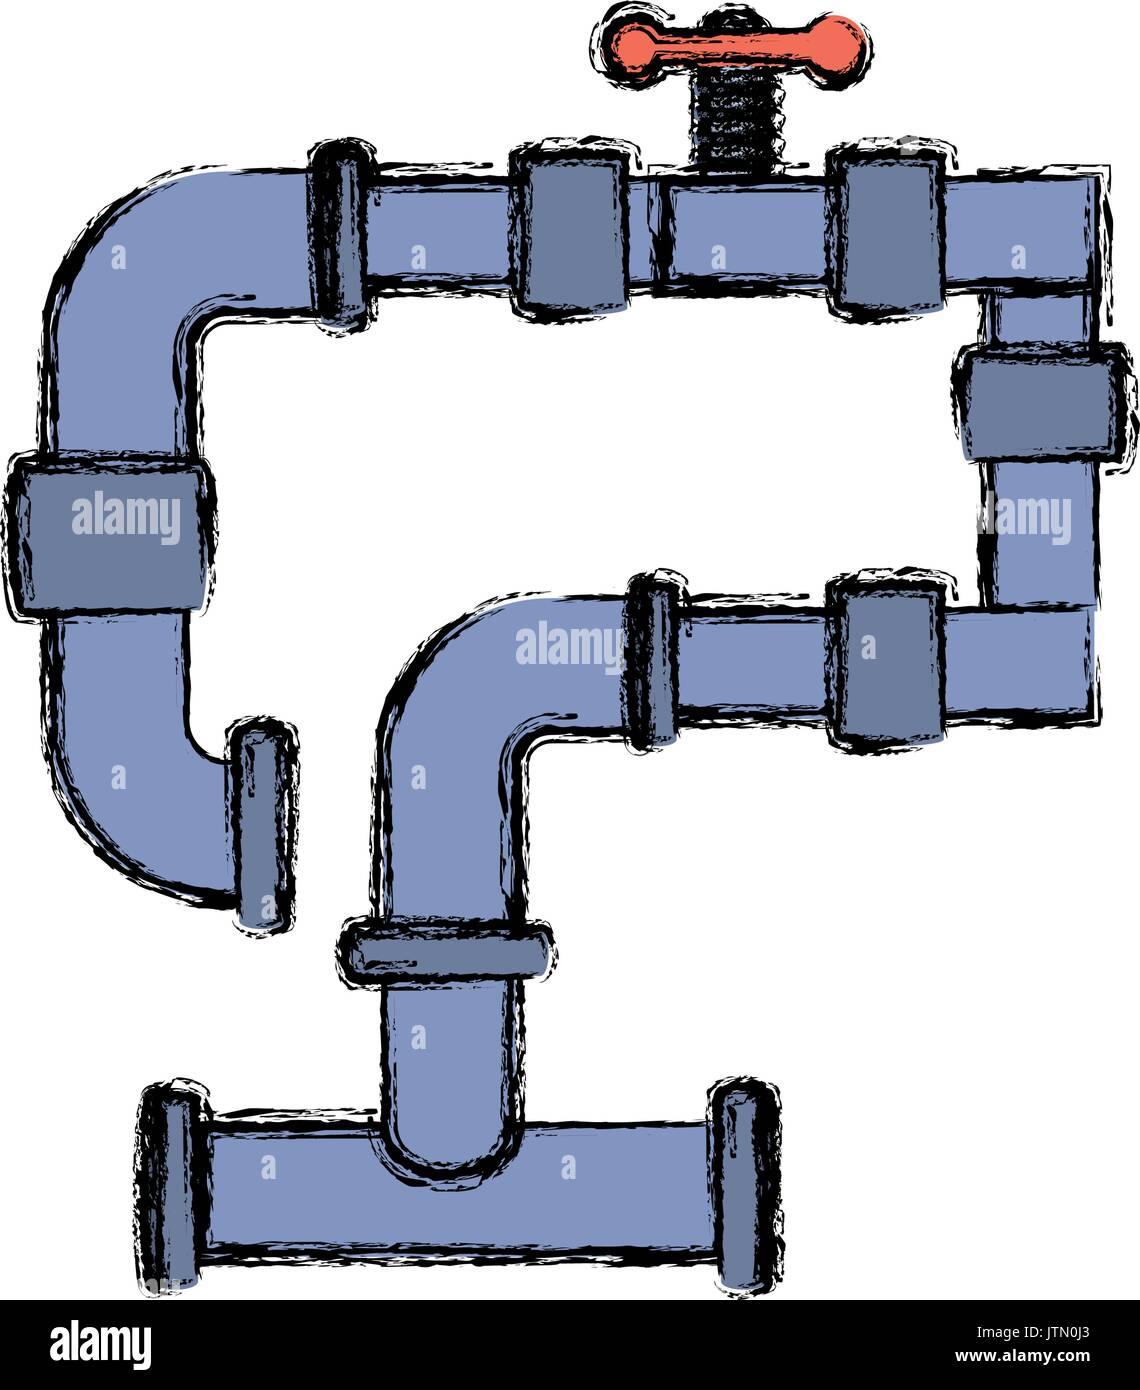 Pipe Connector Cut Out Stock Images Pictures Alamy Piping Diagram Symbols Union Plumbing Symbol Image